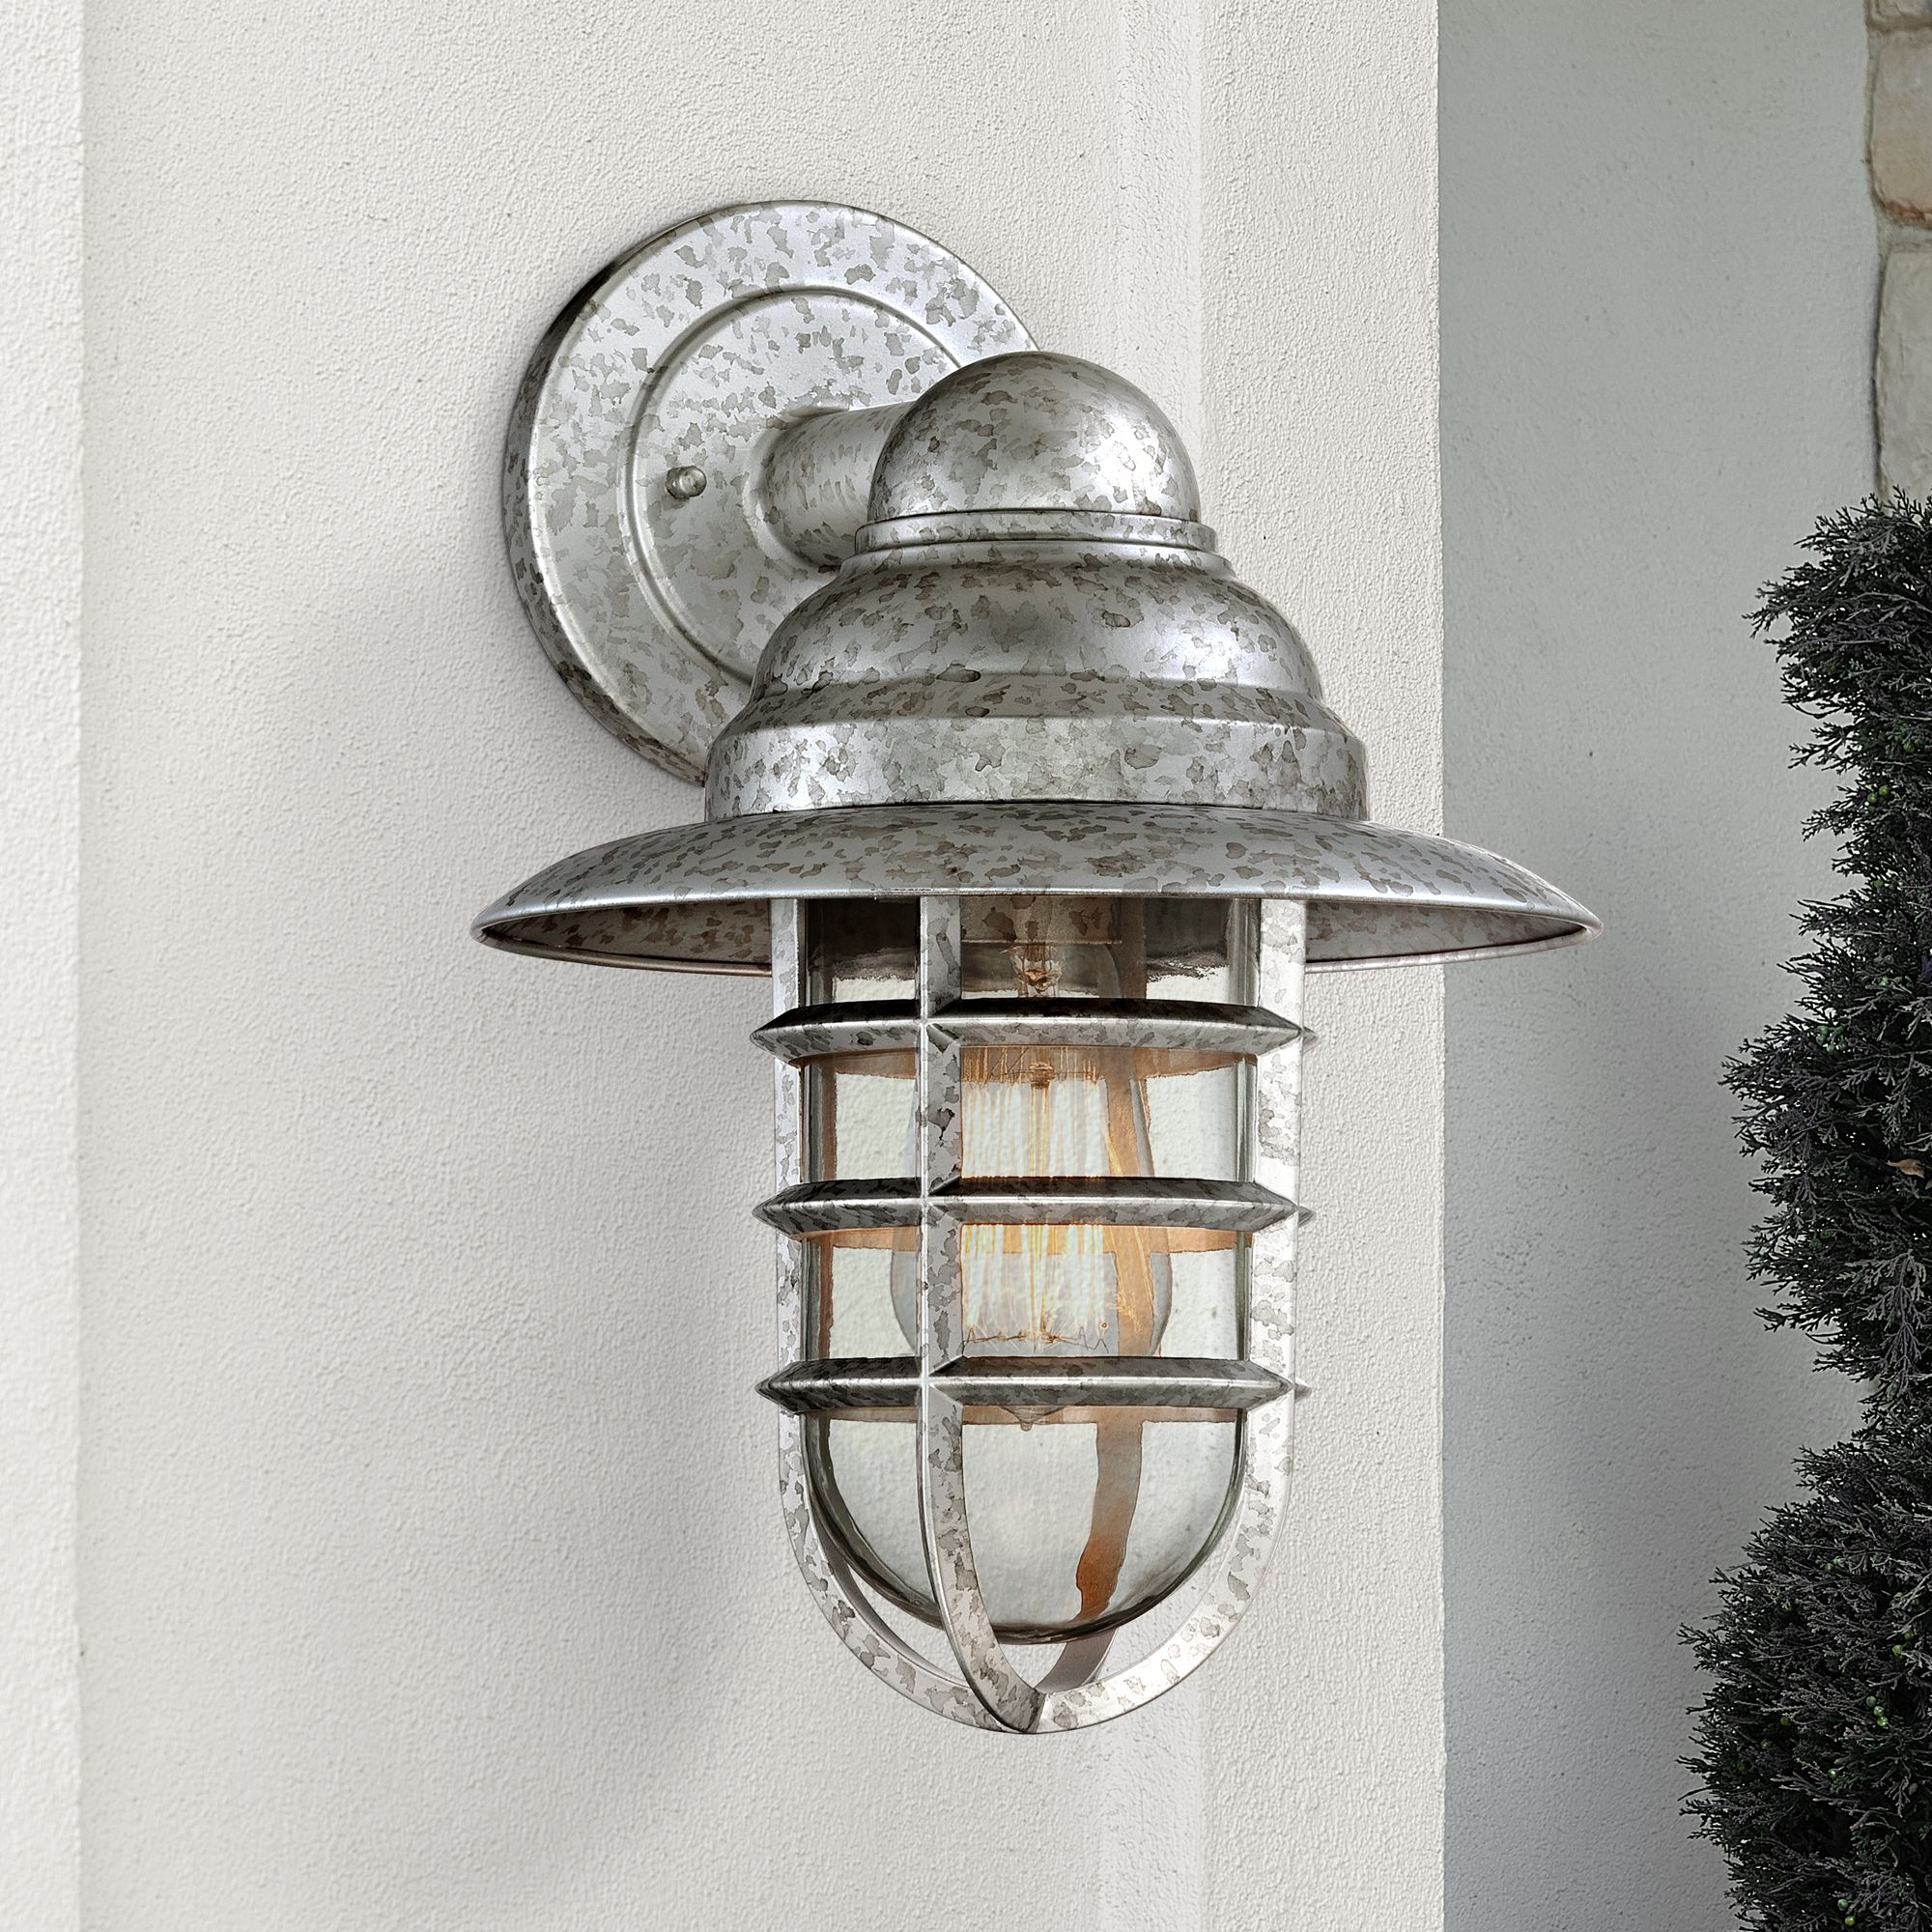 "John Timberland Modern Outdoor Wall Light Fixture Galvanized Hooded 13 1/4"" Caged Glass Exterior House Porch Patio"